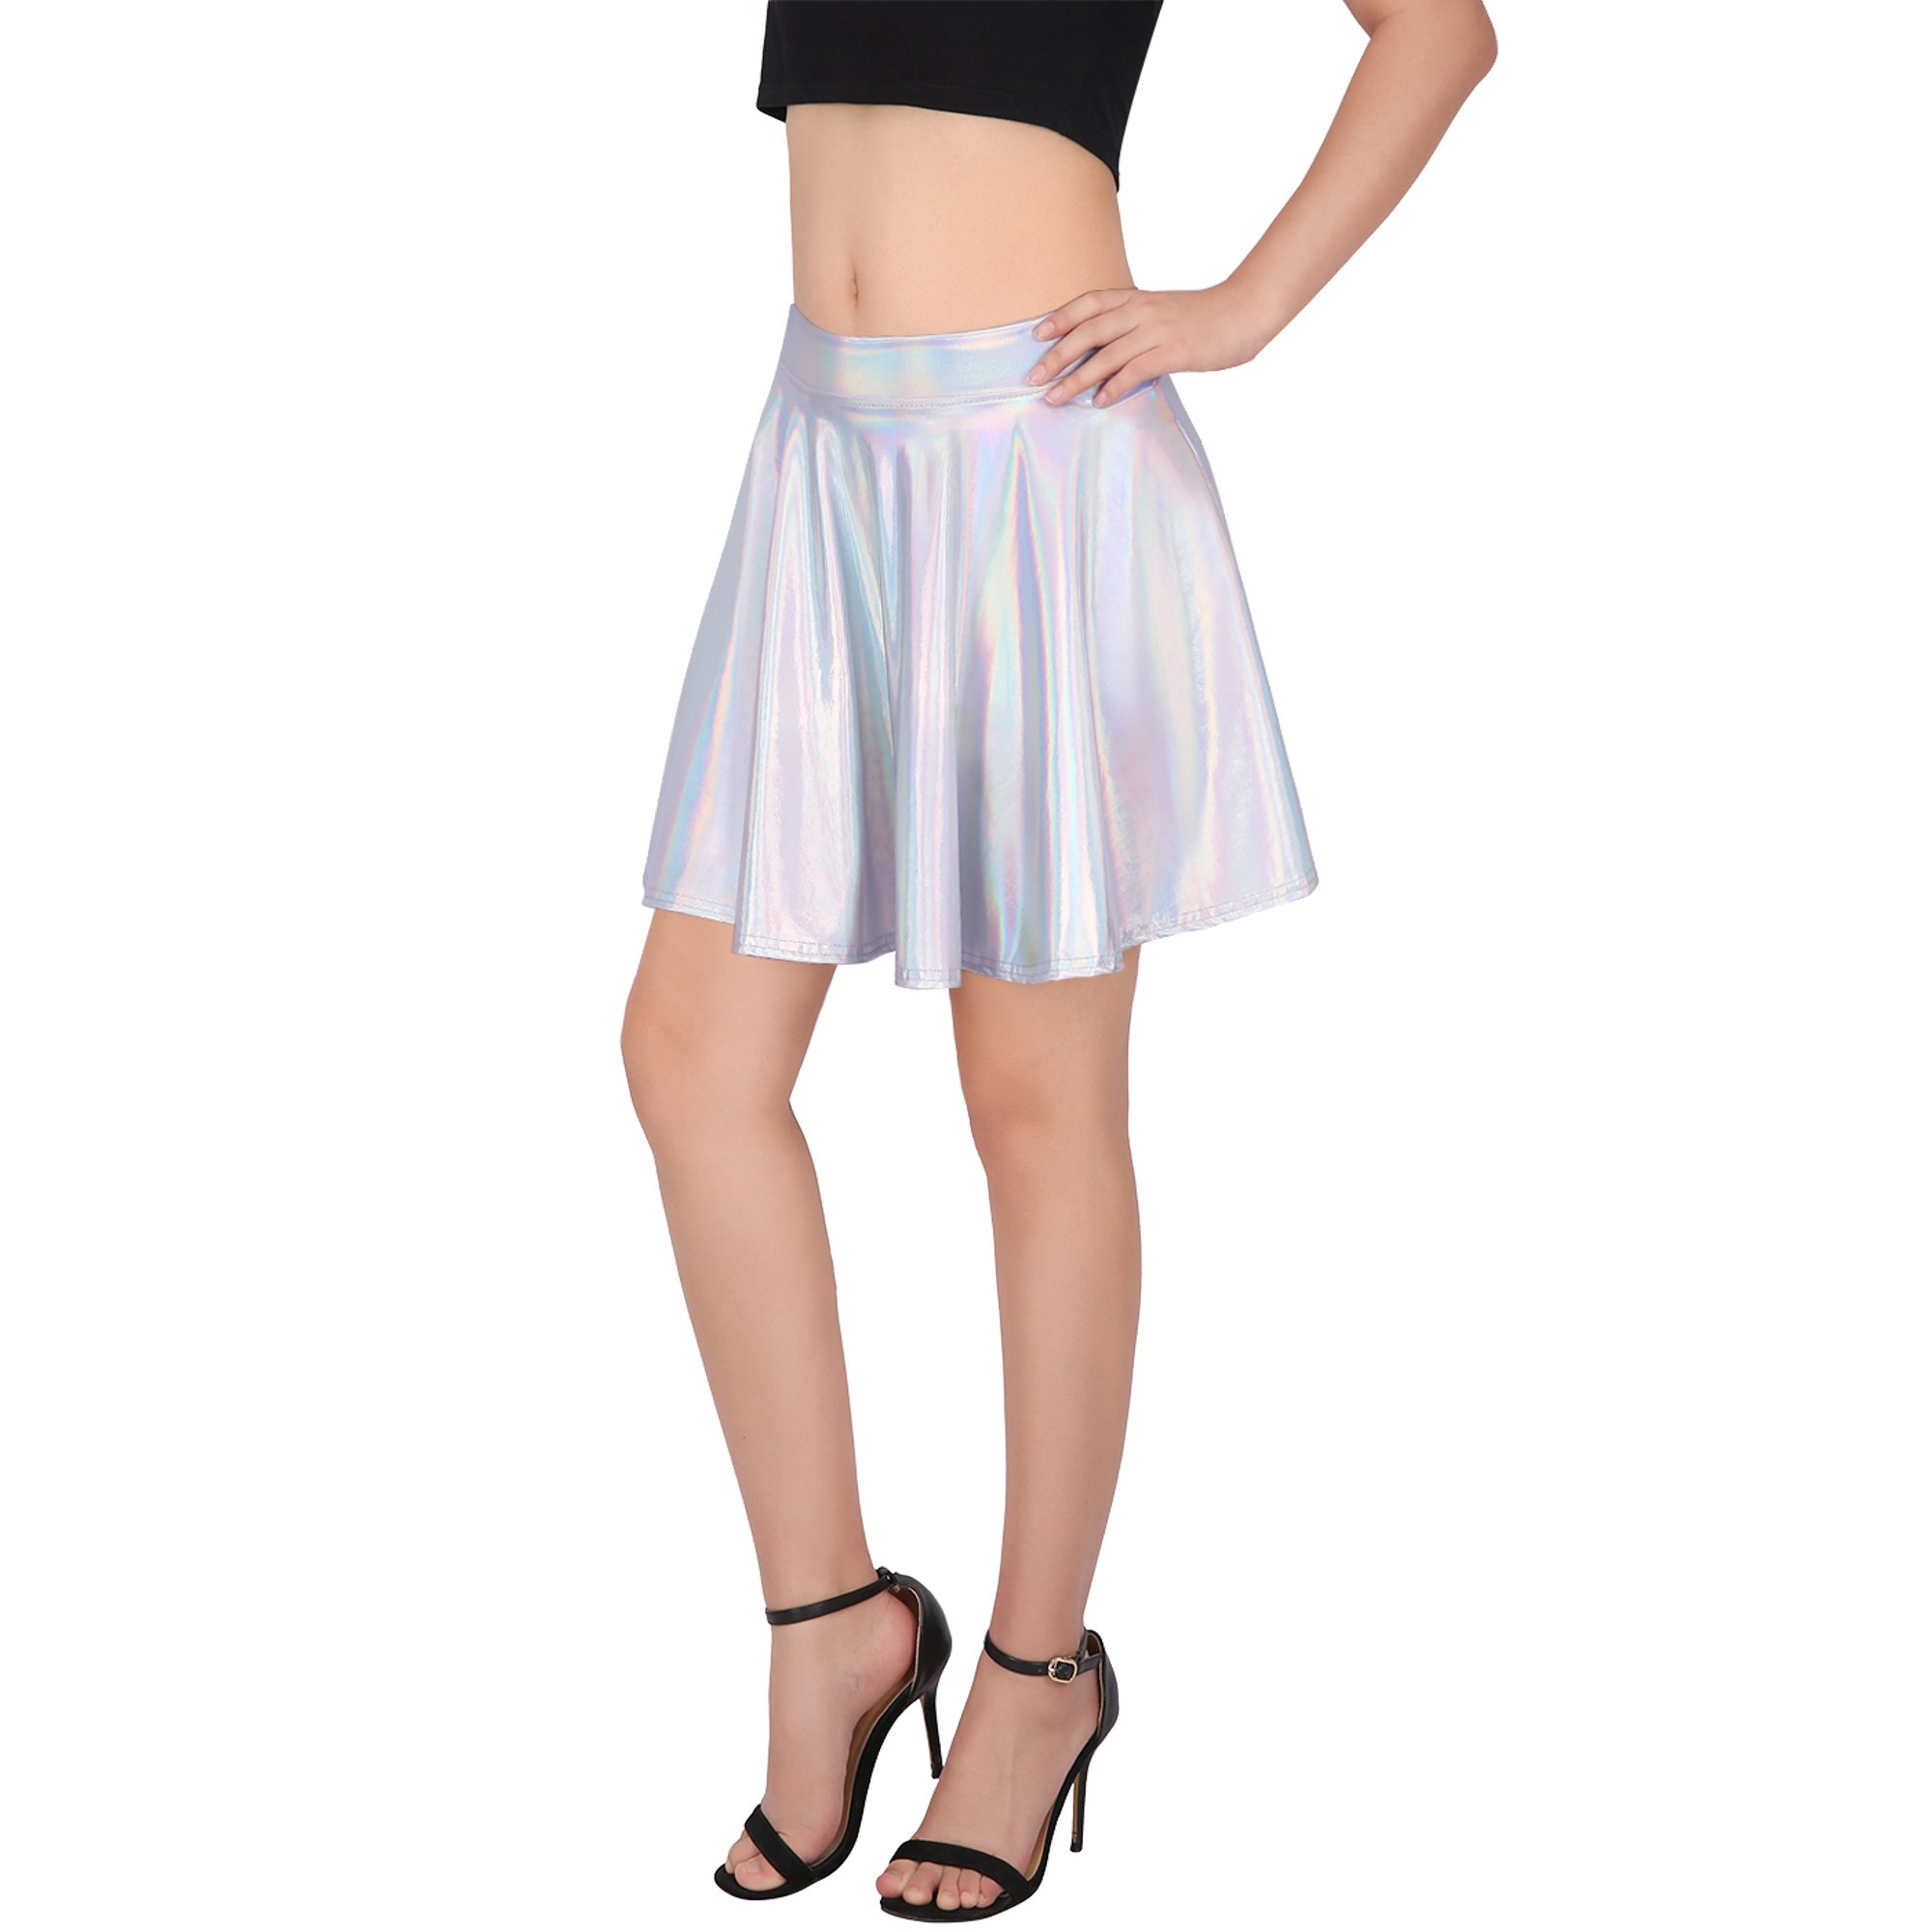 b05eb1805d712 HDE Women's Shiny Liquid Metallic Holographic Pleated Flared Mini Skater  Skirt (Gold, XX-Large) | Walmart Canada ?